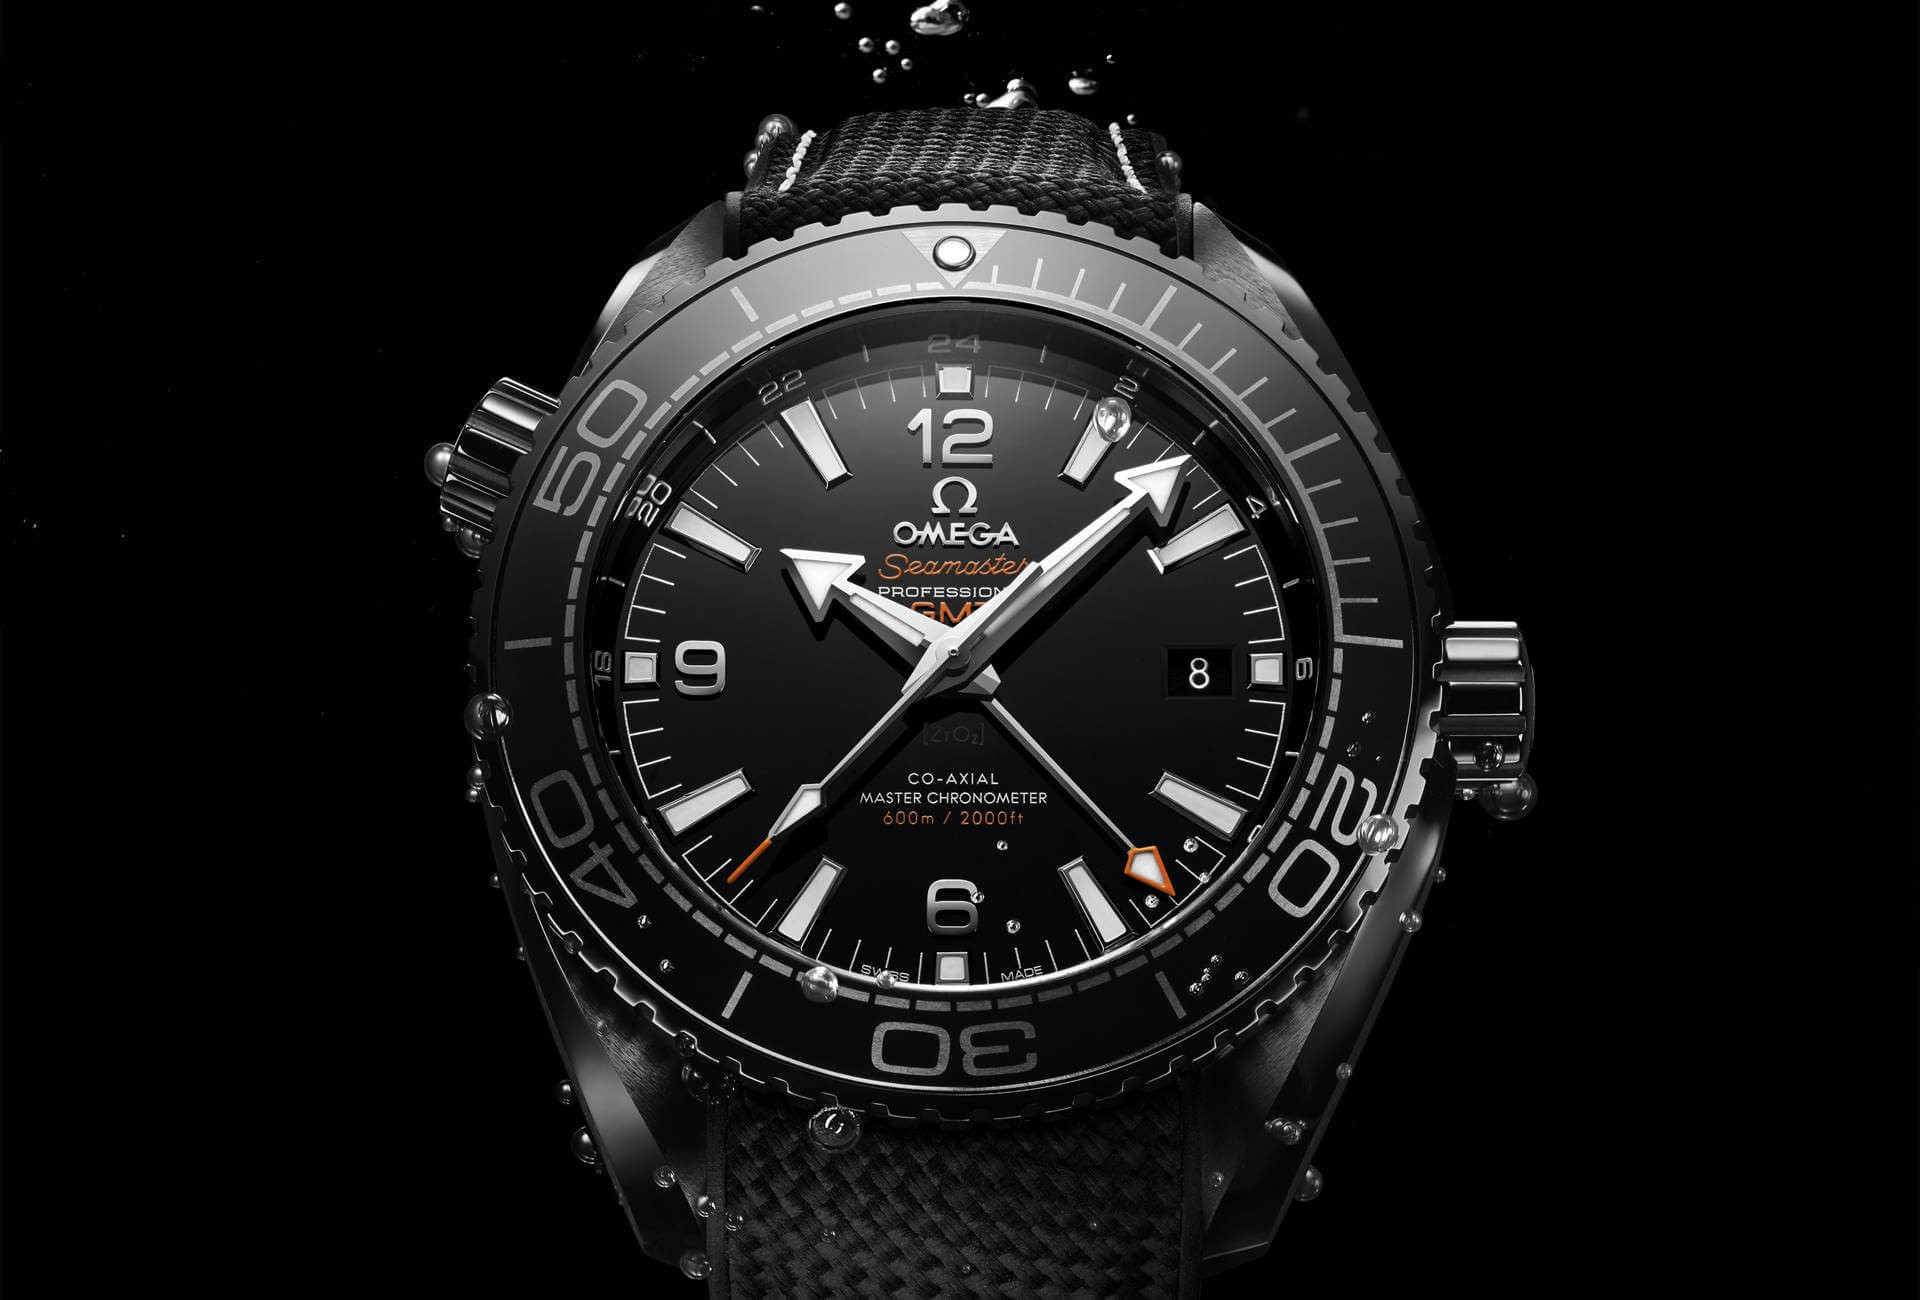 Check Out These 3 New Exquisite Omega Timepieces